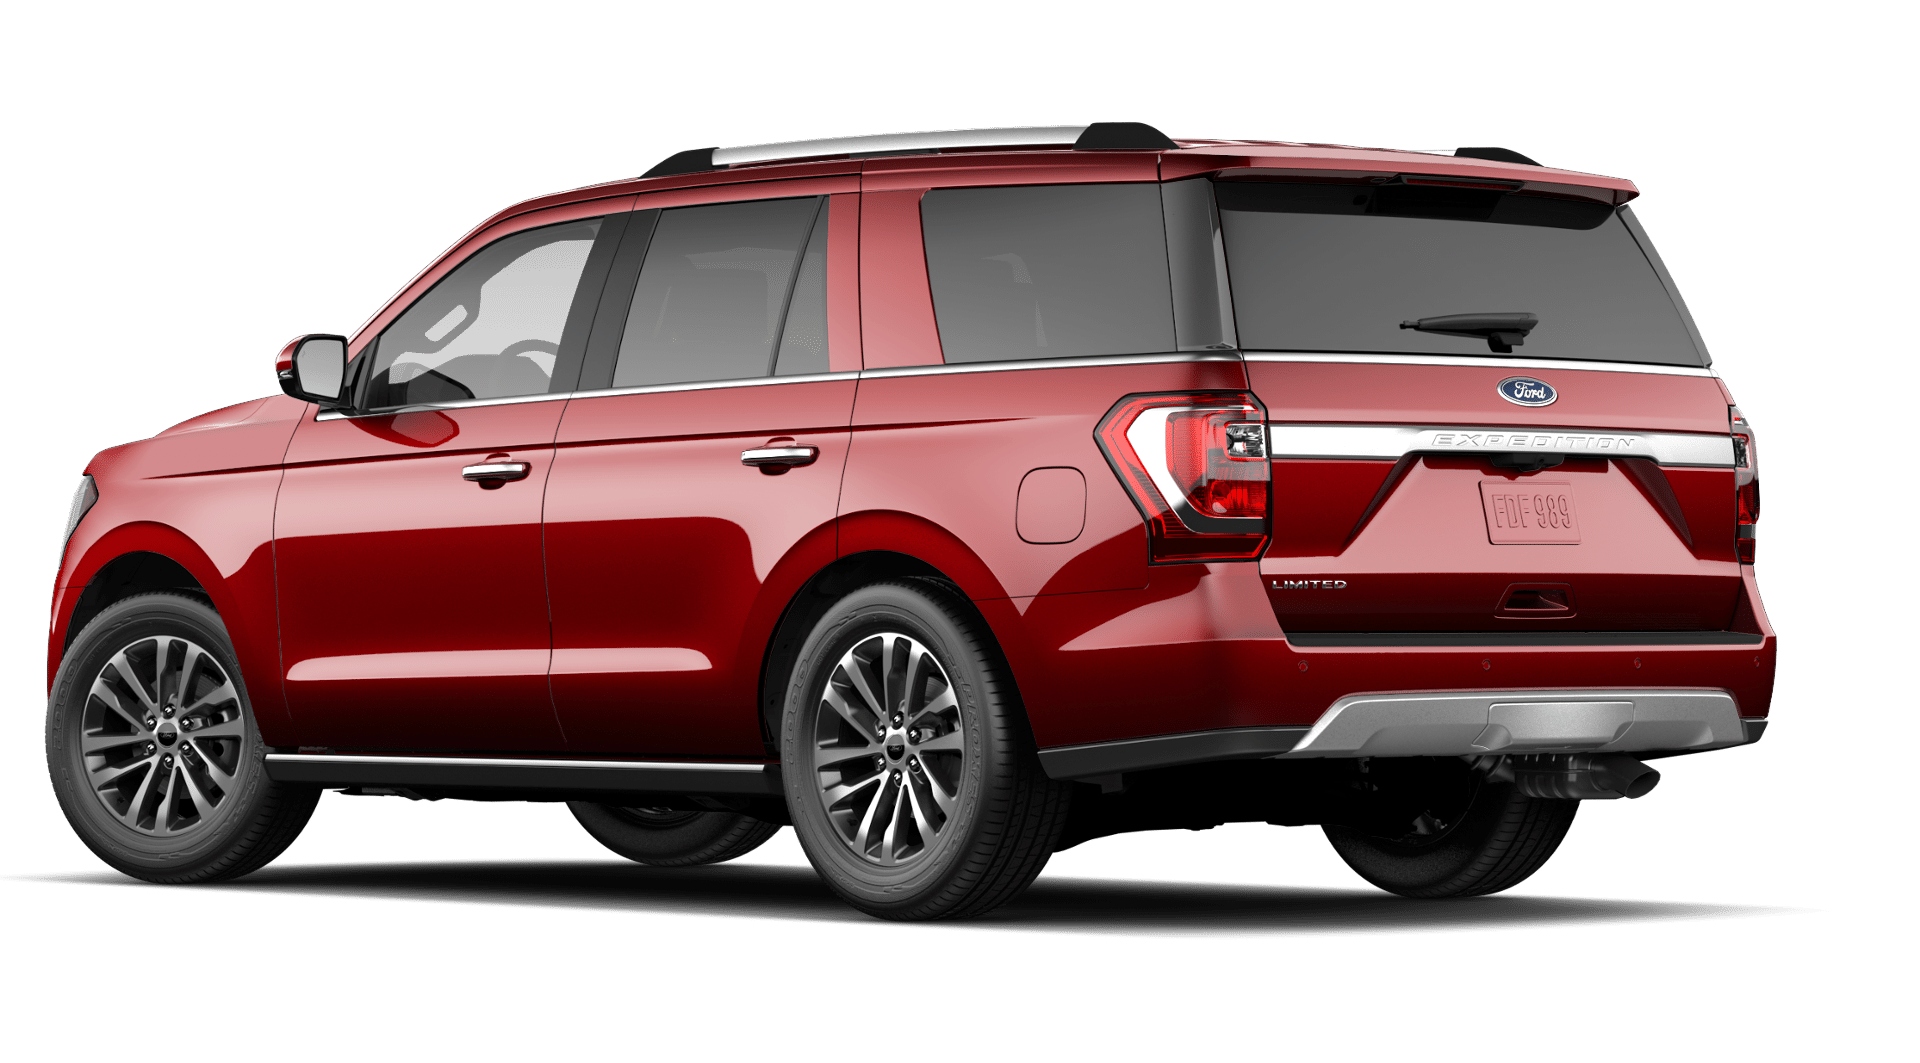 2020 Ford Expedition in Rapid Red